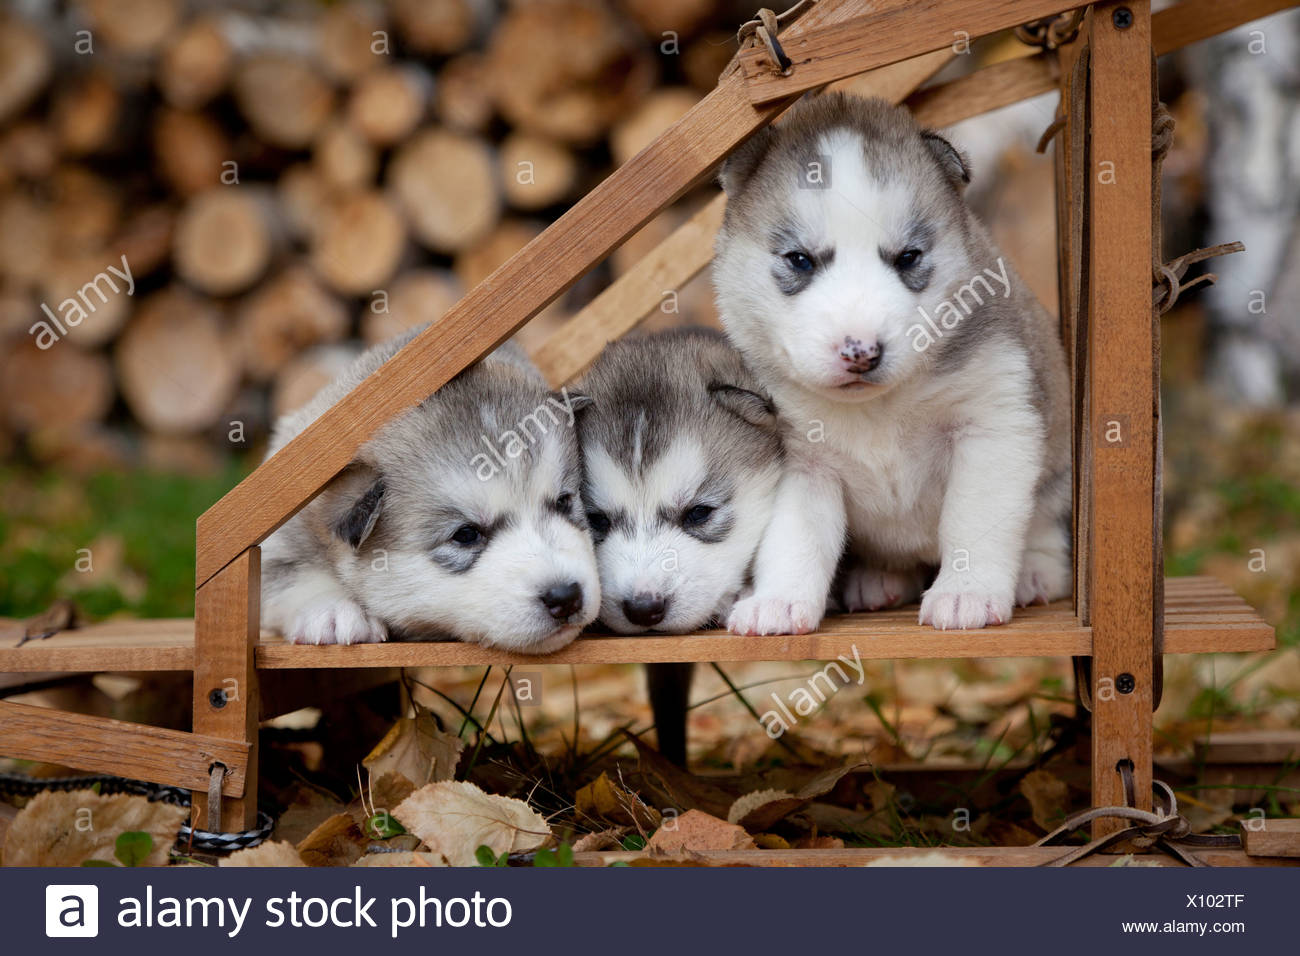 Pure-bred Siberian Husky puppies in small wooden dog sled, Alaska - Stock Image